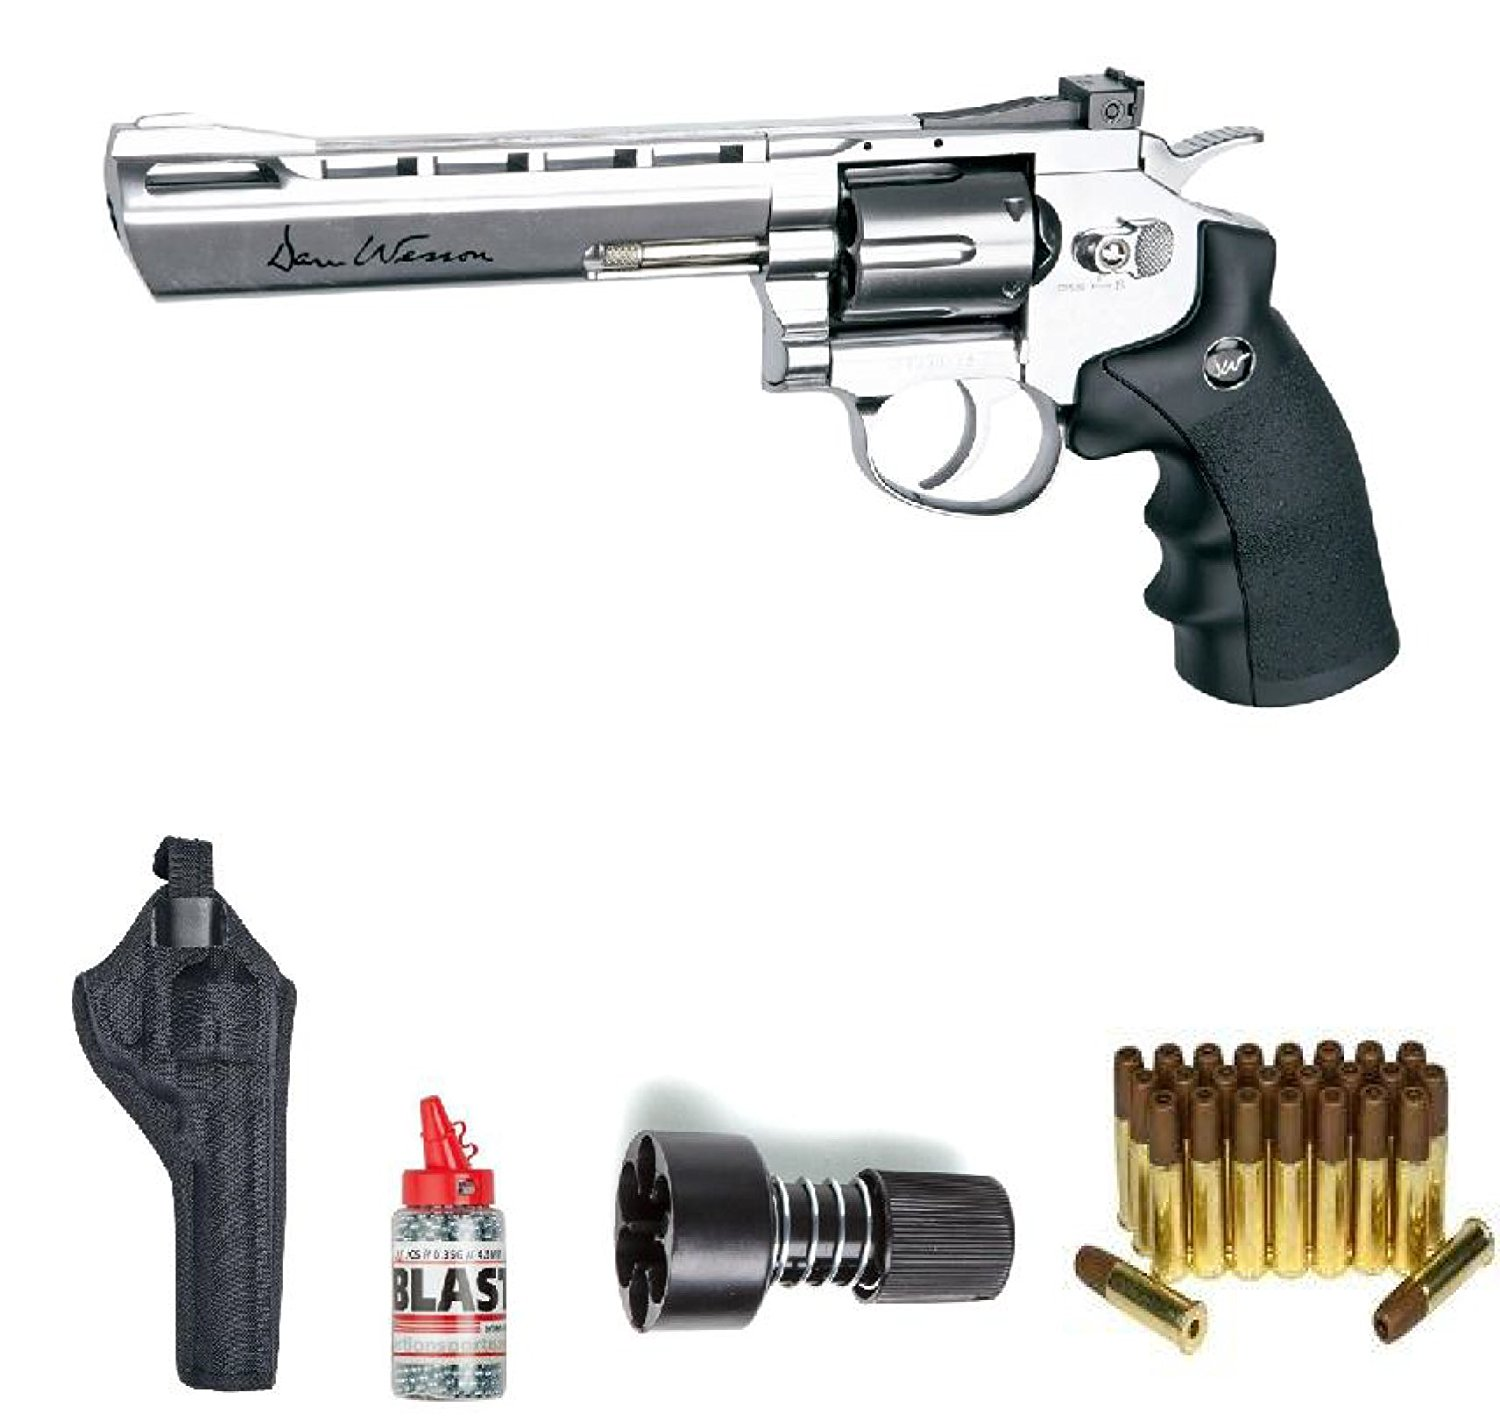 "ASG Dan Wesson BB Air Gun with Holster Cartridges Extra BBs Speed Loader, Silver, 6"" by ASG"